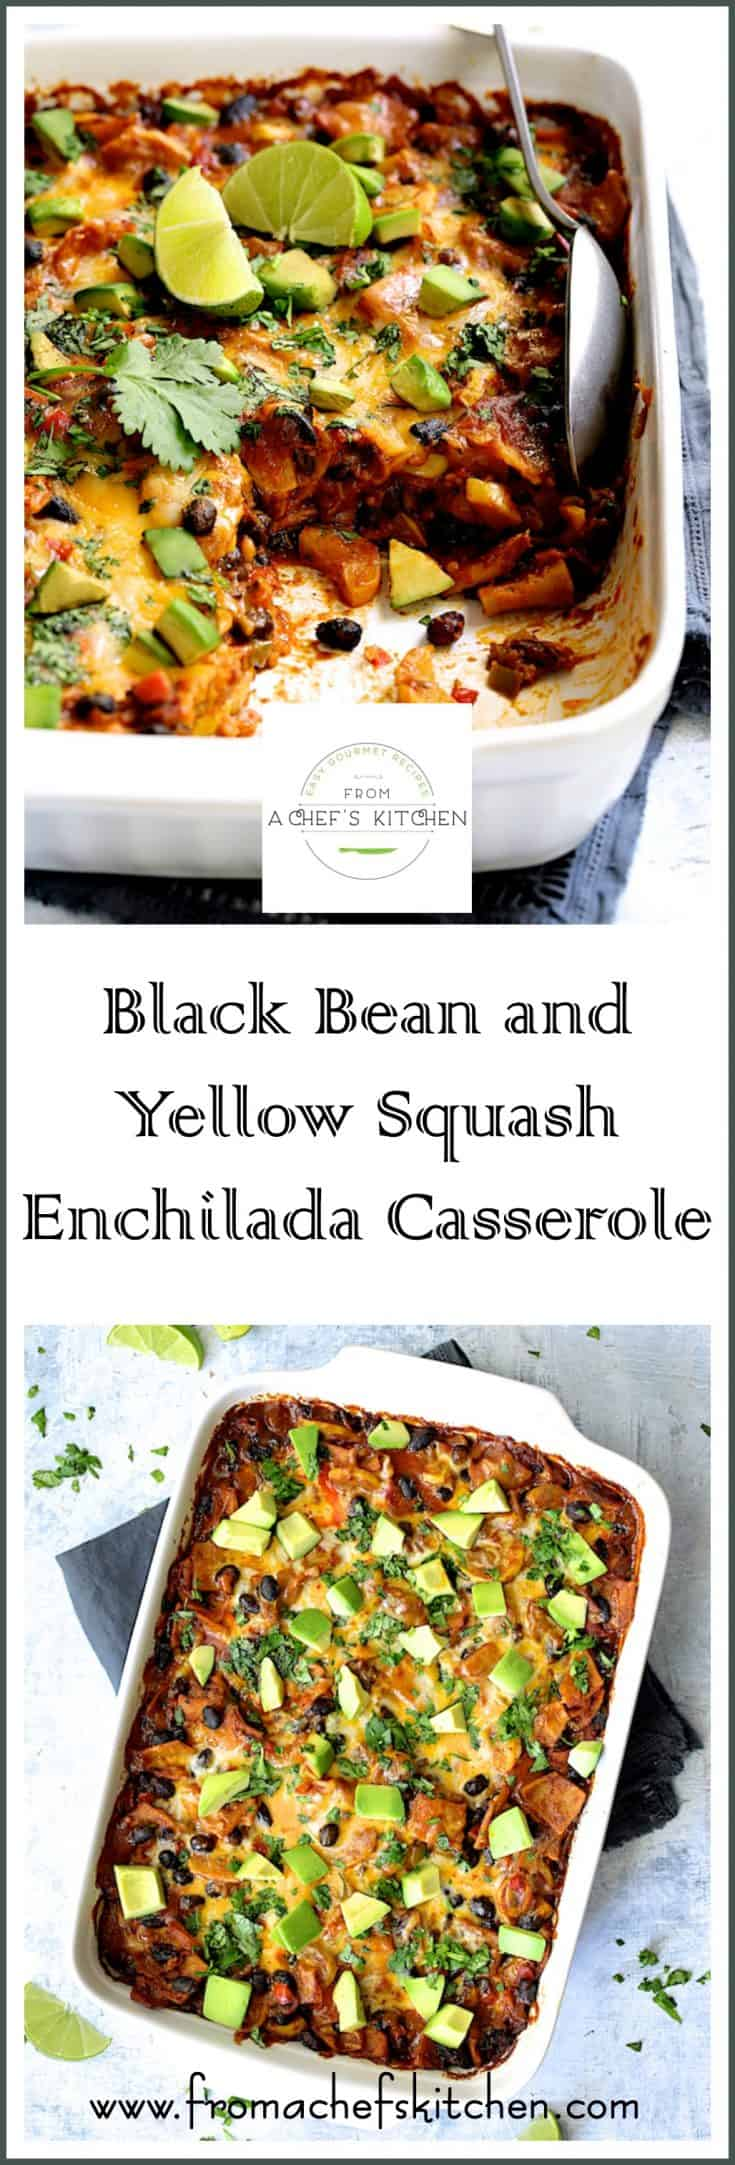 Black Bean and Yellow Squash Enchilada Casserole is a hearty meatless Mexican-inspired dish even non-vegetarians will love! #vegetarian #meatless #Mexicanfood #Mexican #vegetarianmexicanfood #blackbean #yellowsquash #enchilada #enchiladacasserole